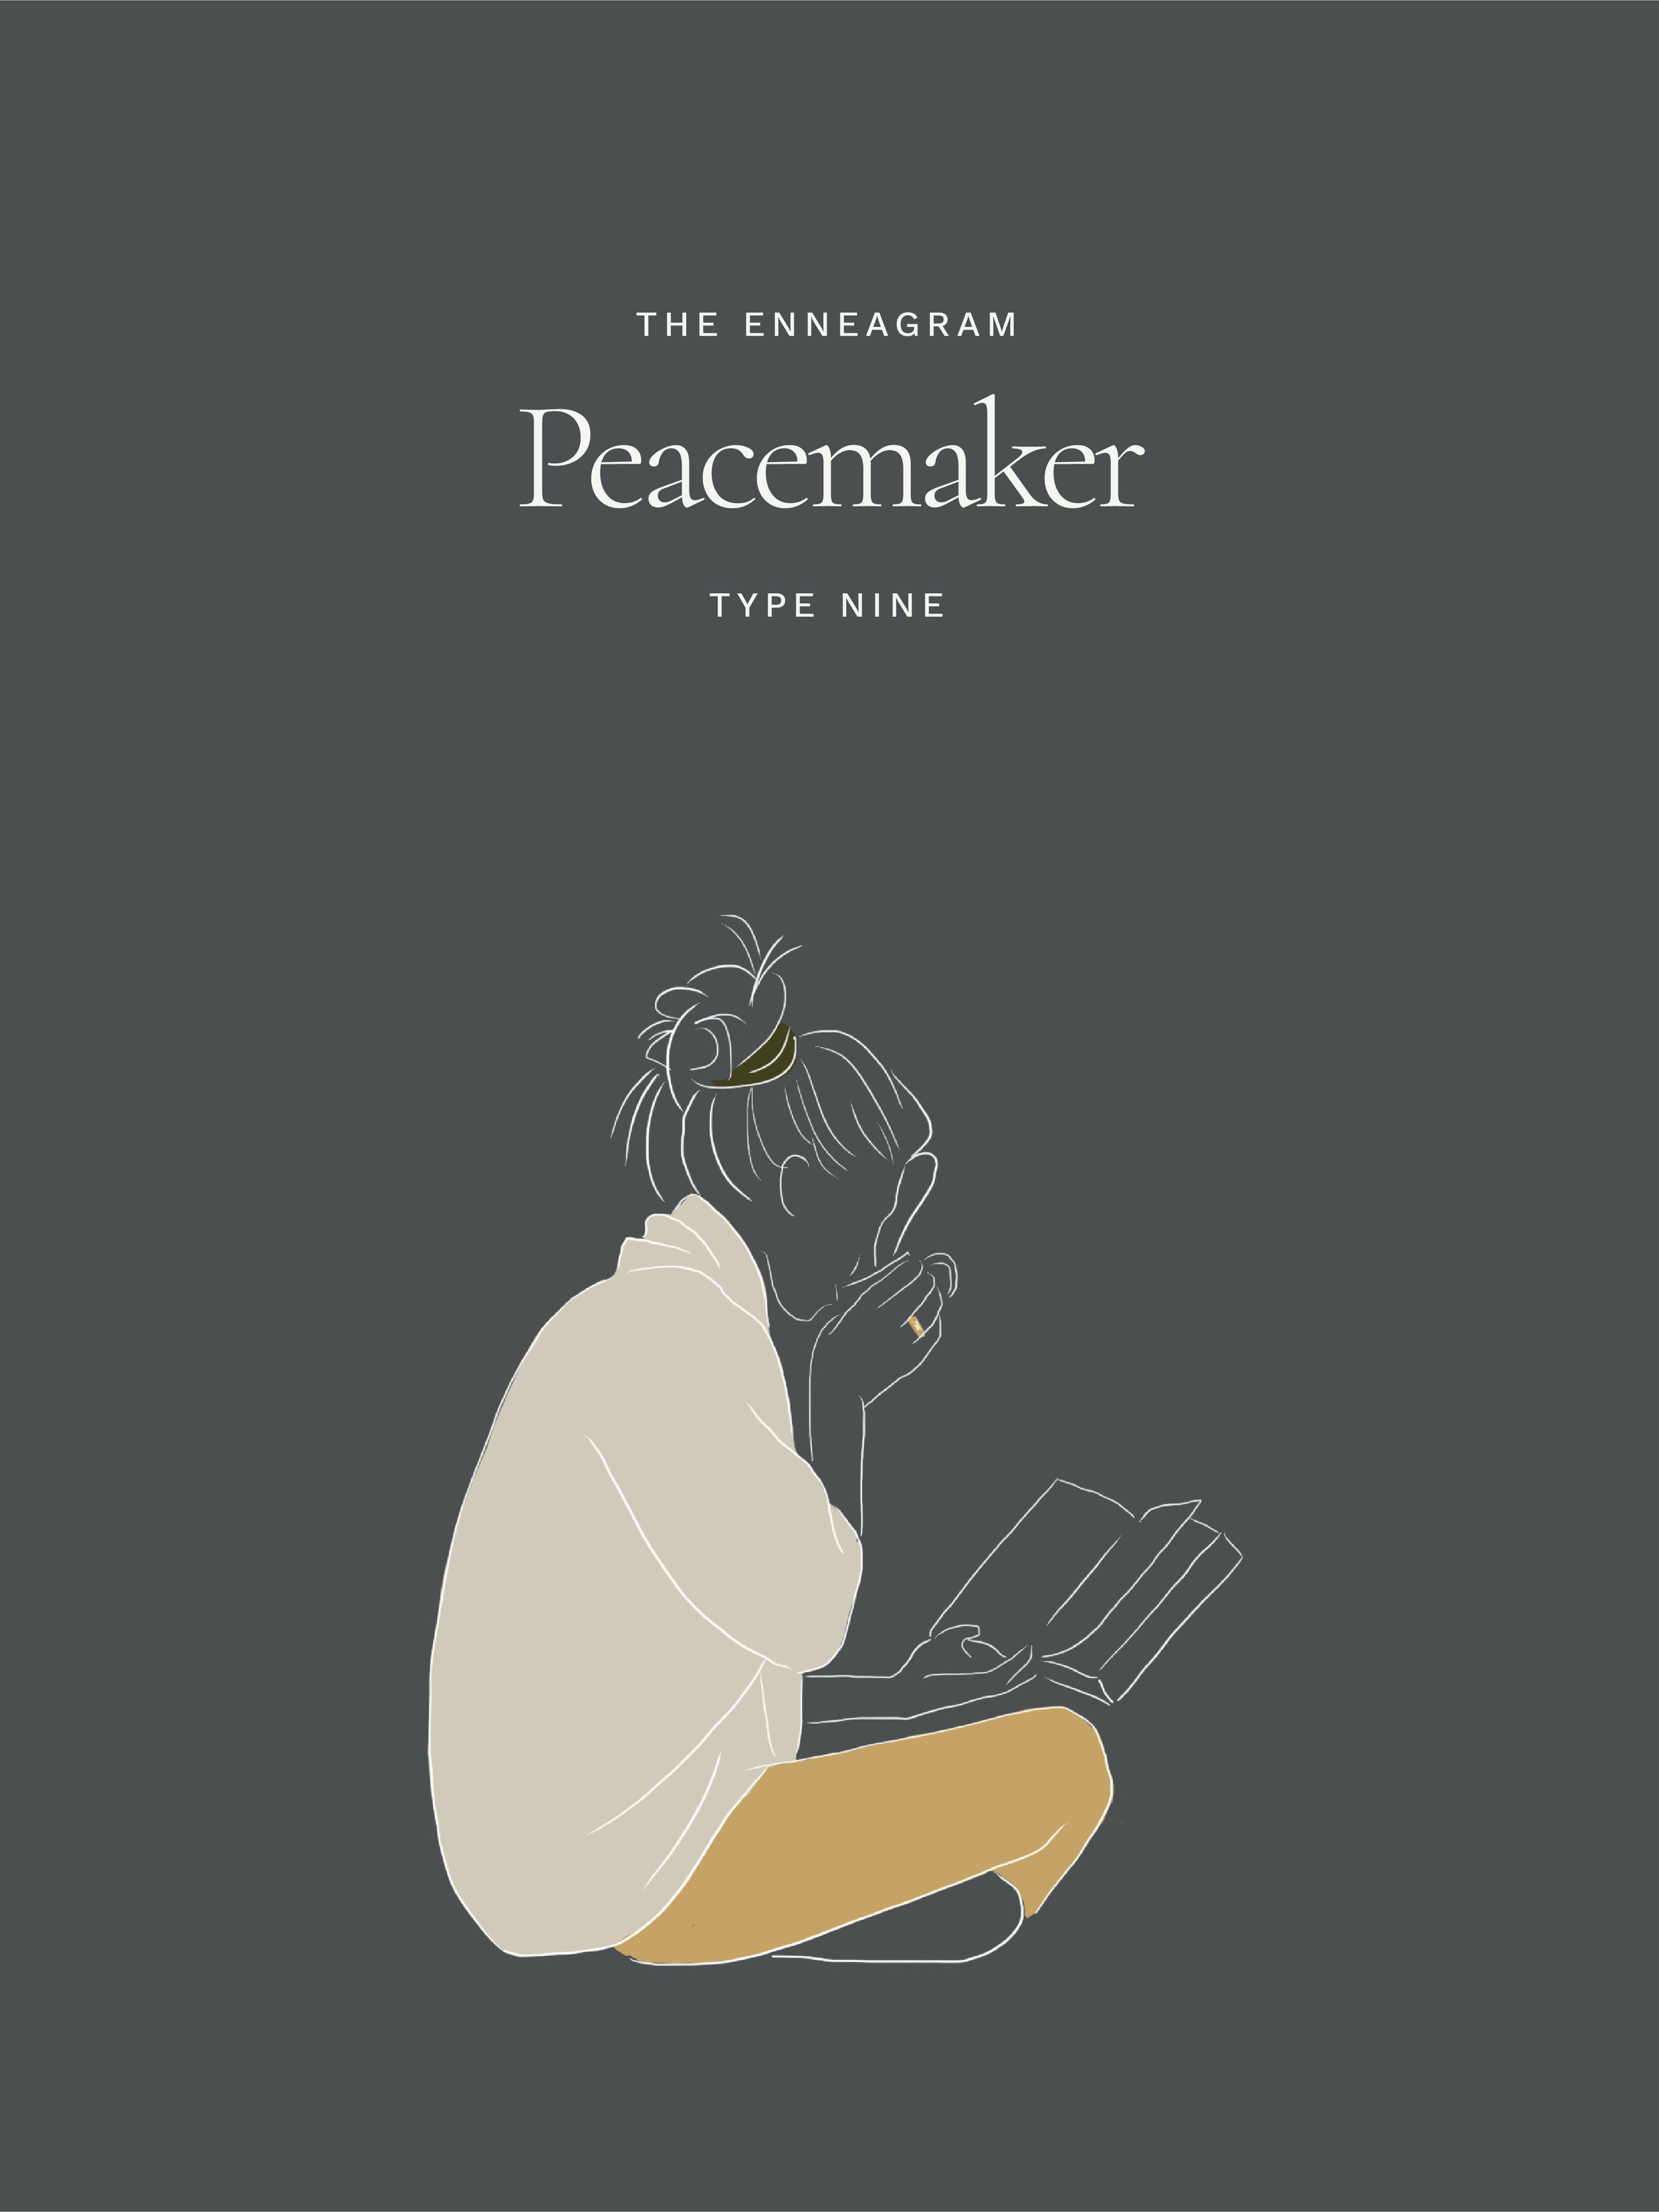 Click to read more about Type Nine - The Peacemaker